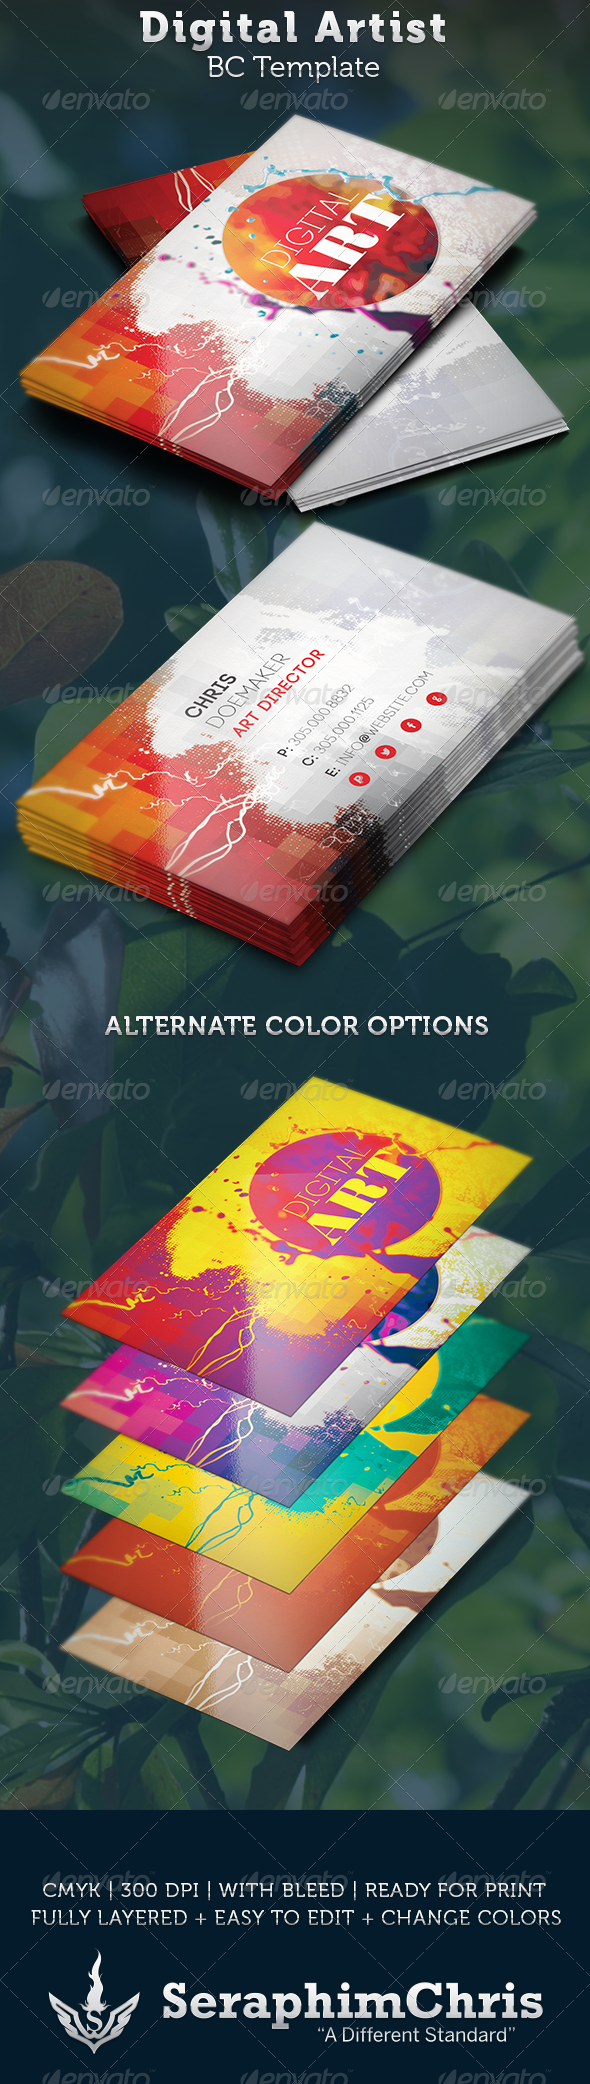 Digital Artist Business Card Template - Creative Business Cards